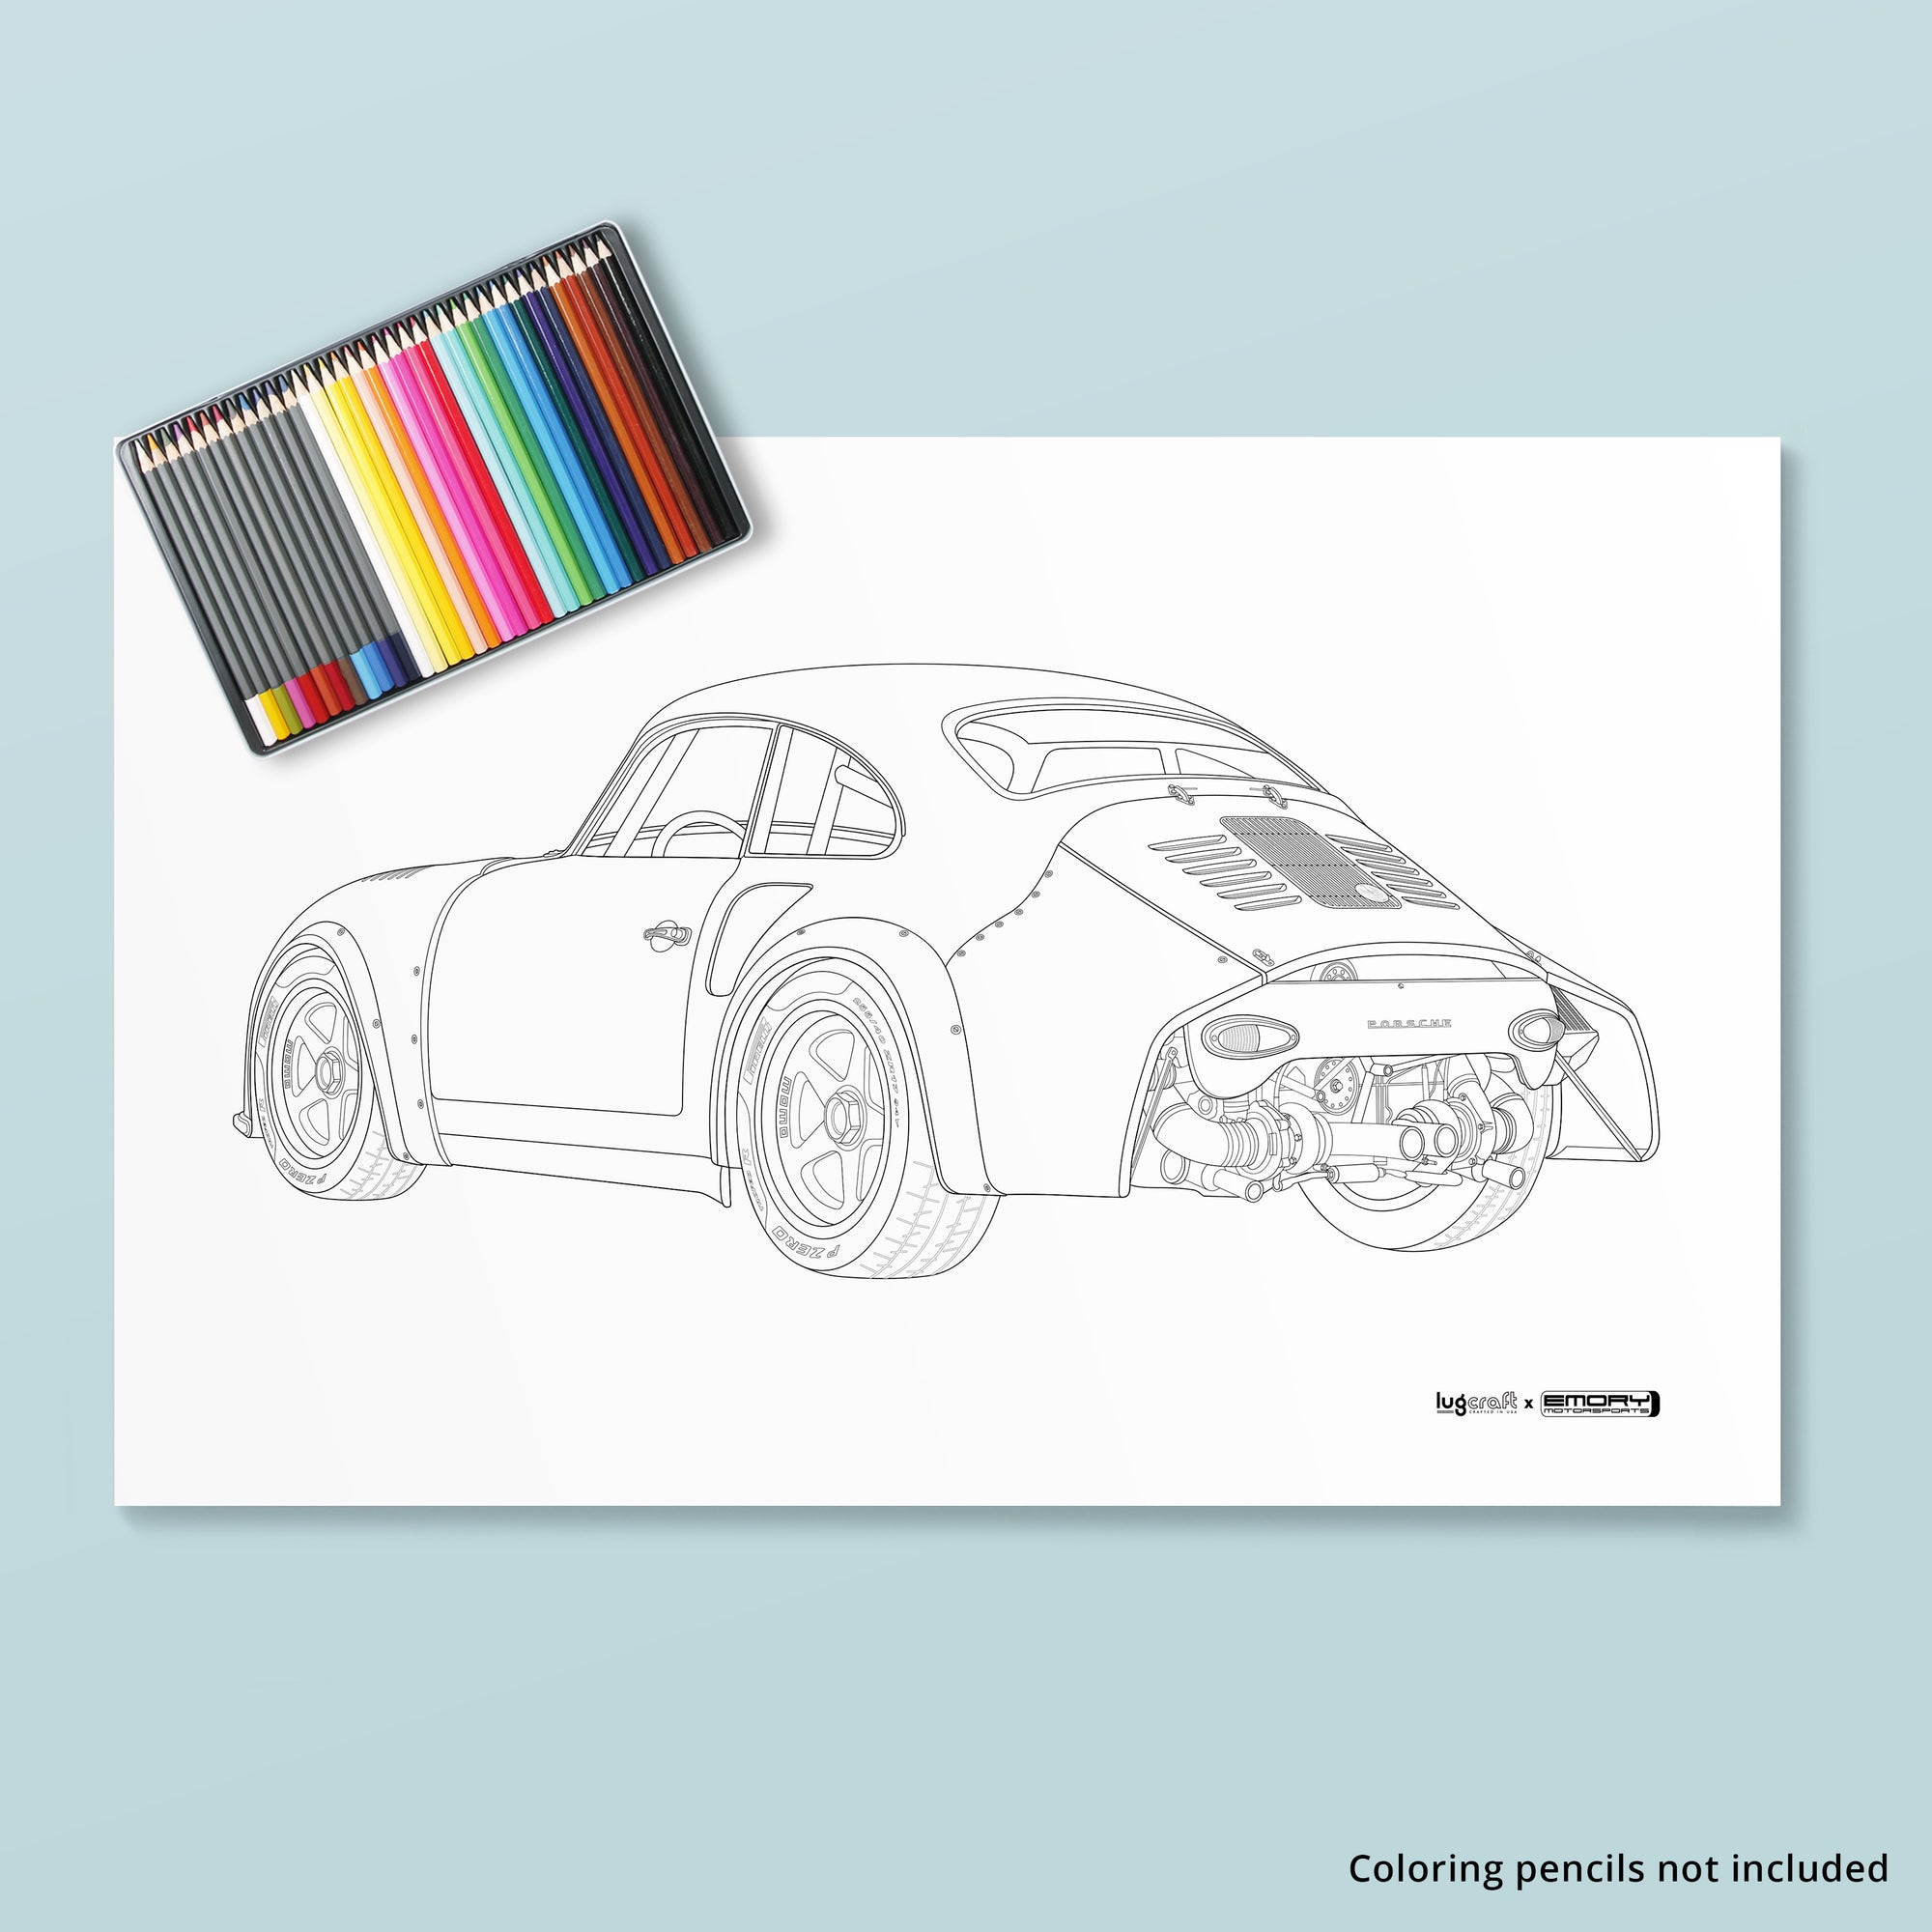 EMORY 356 RSR COLORING POSTER